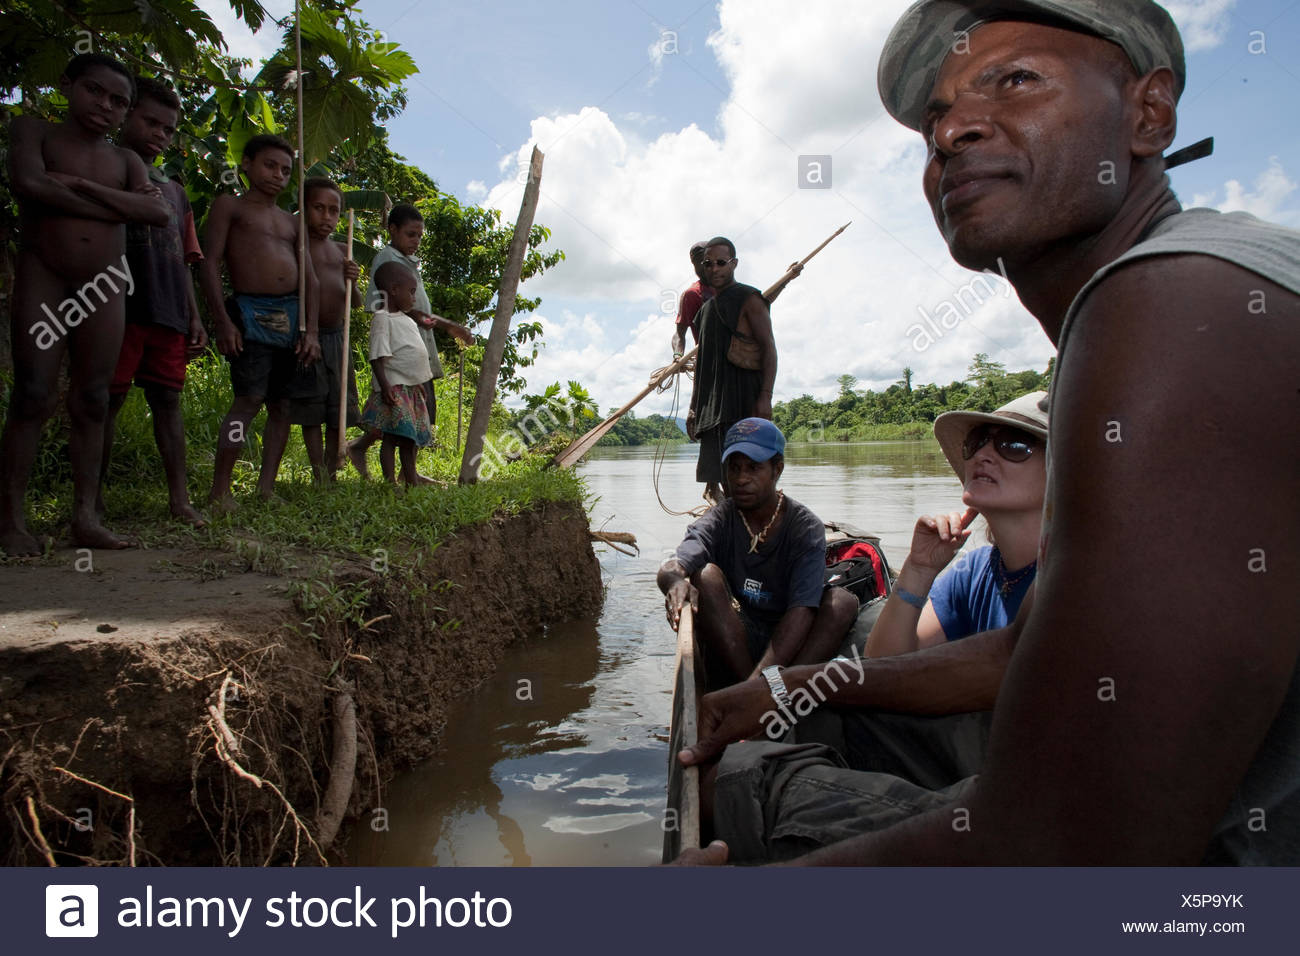 An anthropological researcher and ethnographer study indigenous cultures. - Stock Image